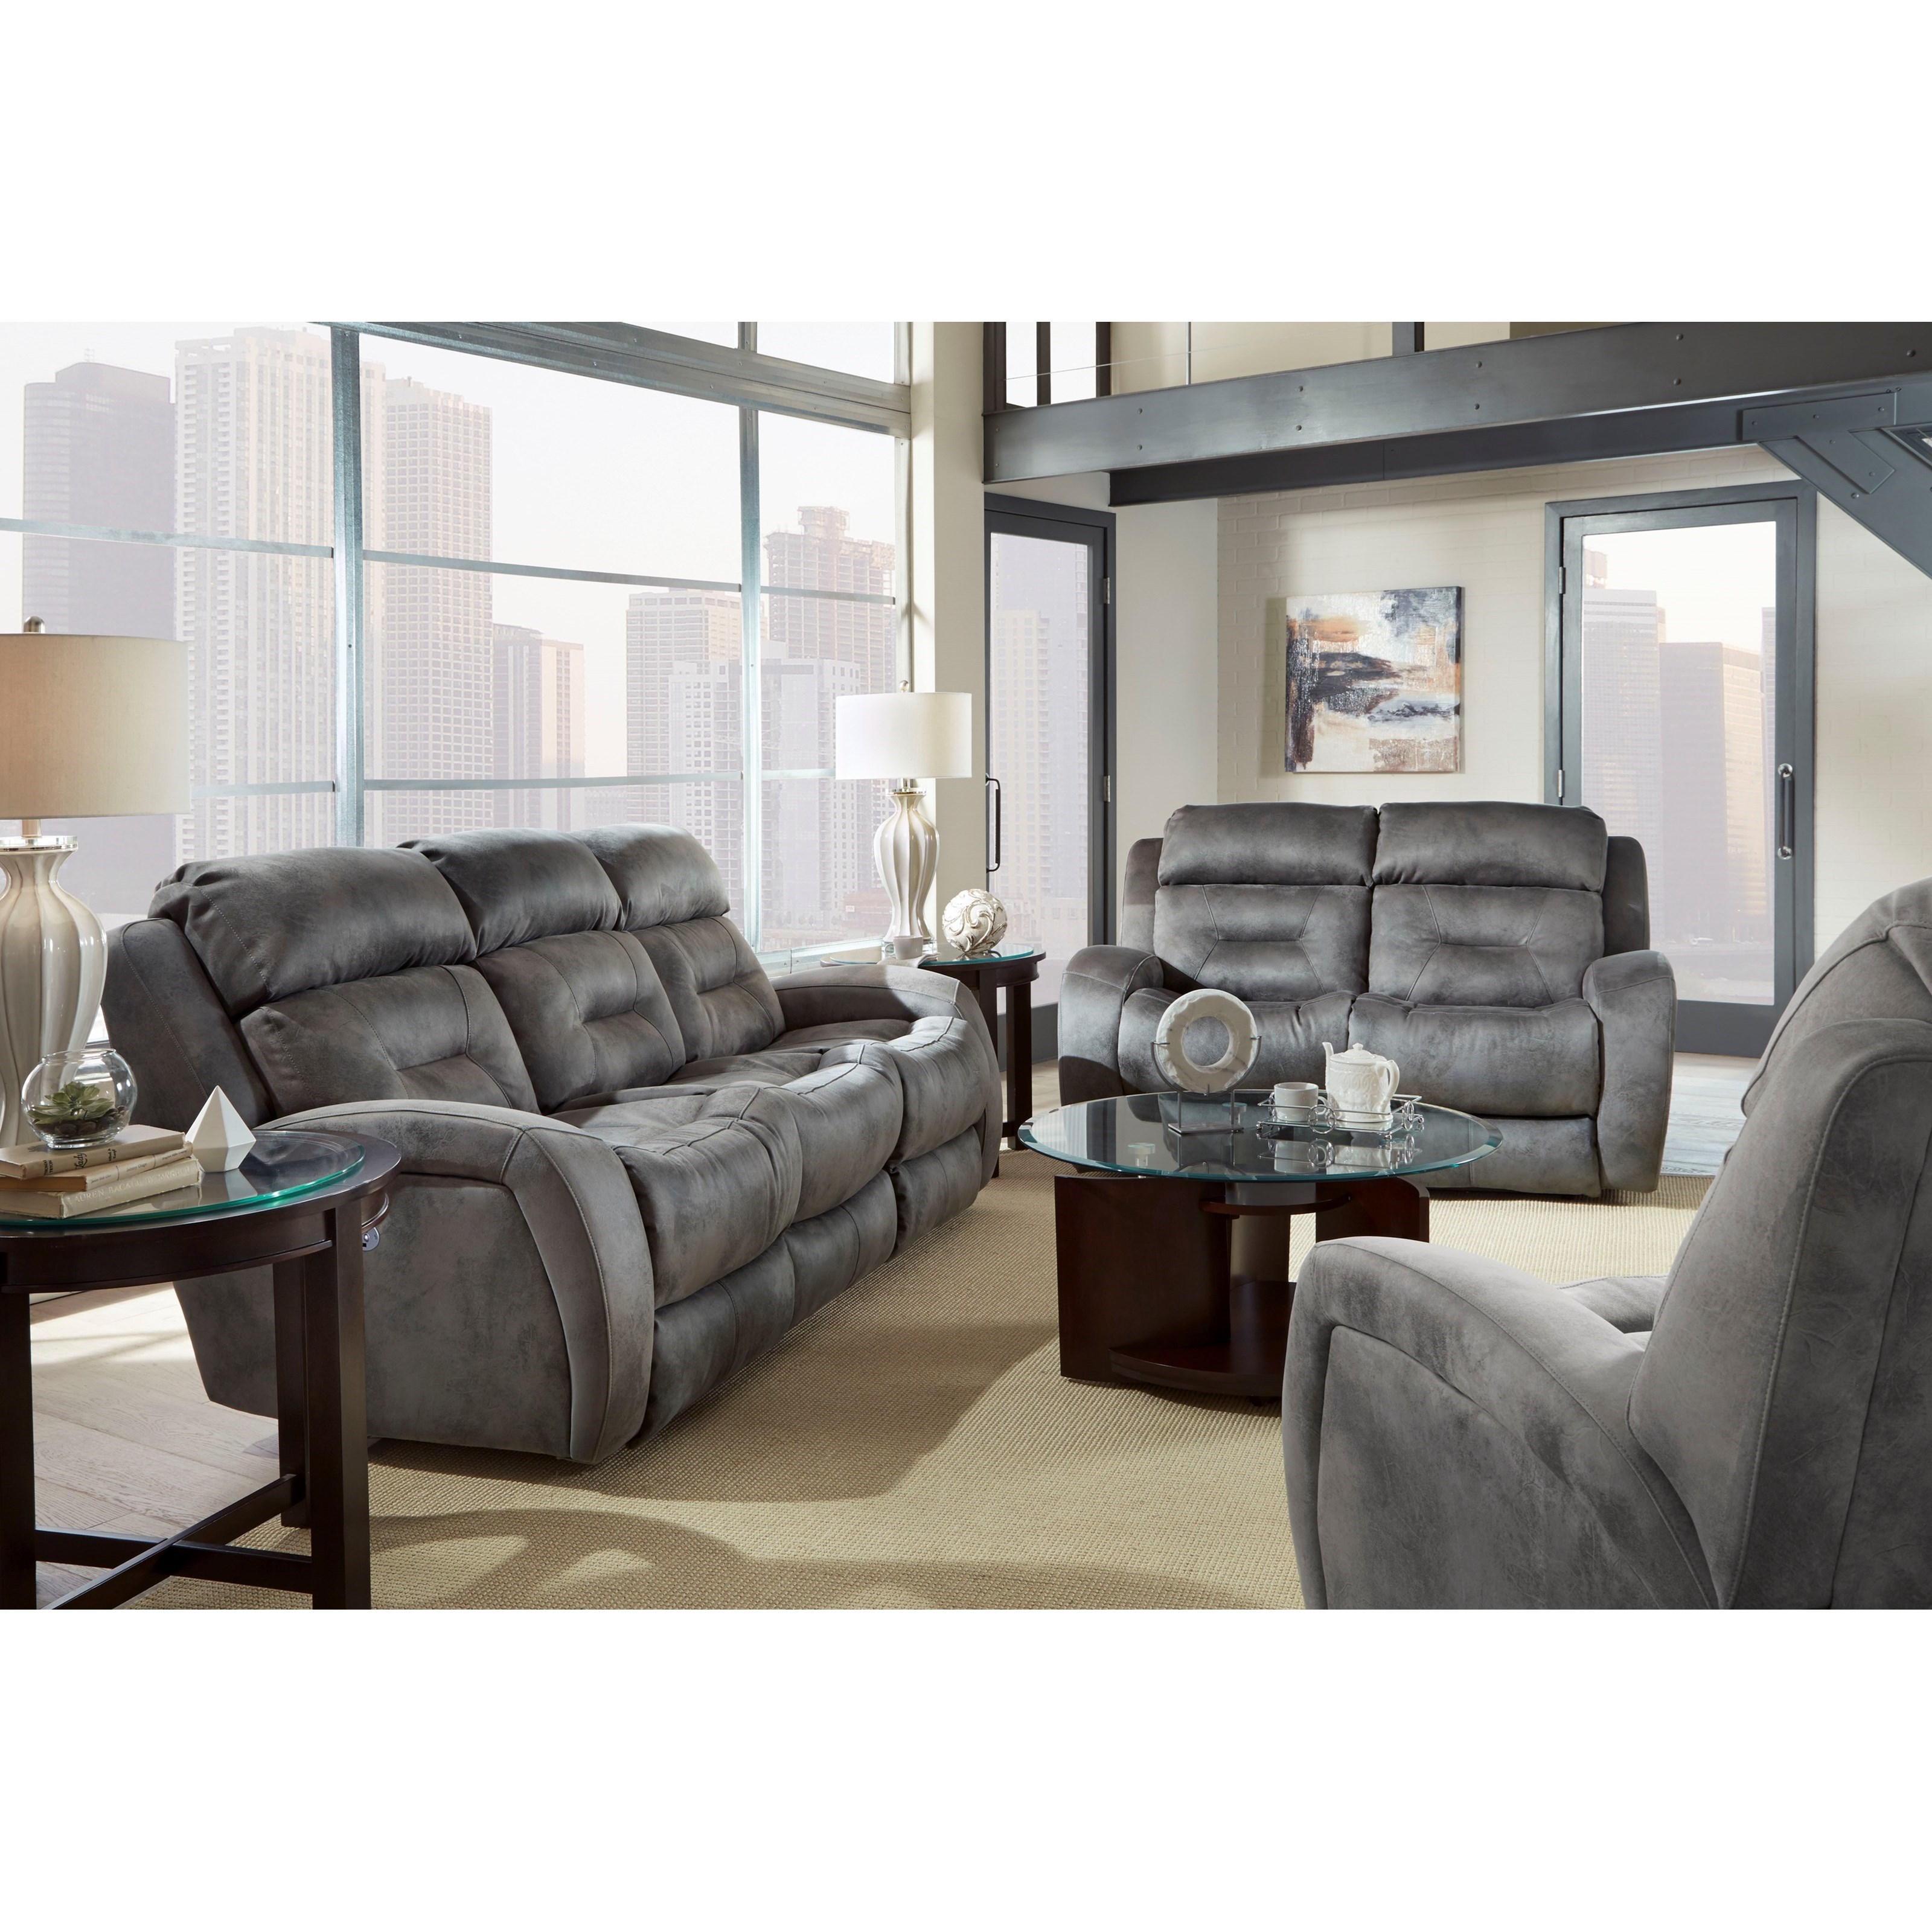 Southern Living Furniture Collection: Southern Motion Showcase 316-61P Double Reclining Sofa